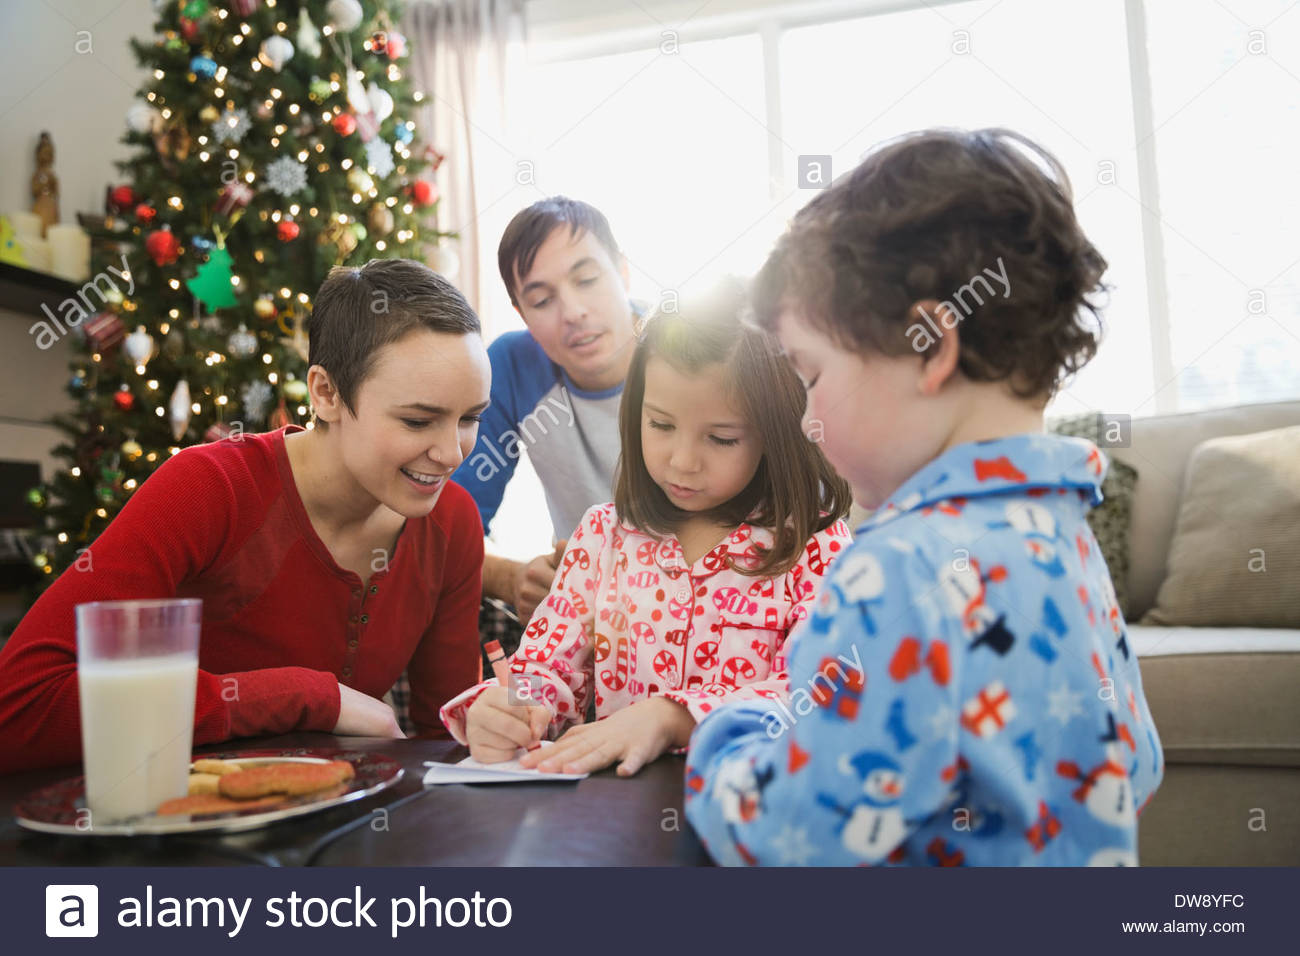 Family watching girl write letter to Santa Claus - Stock Image